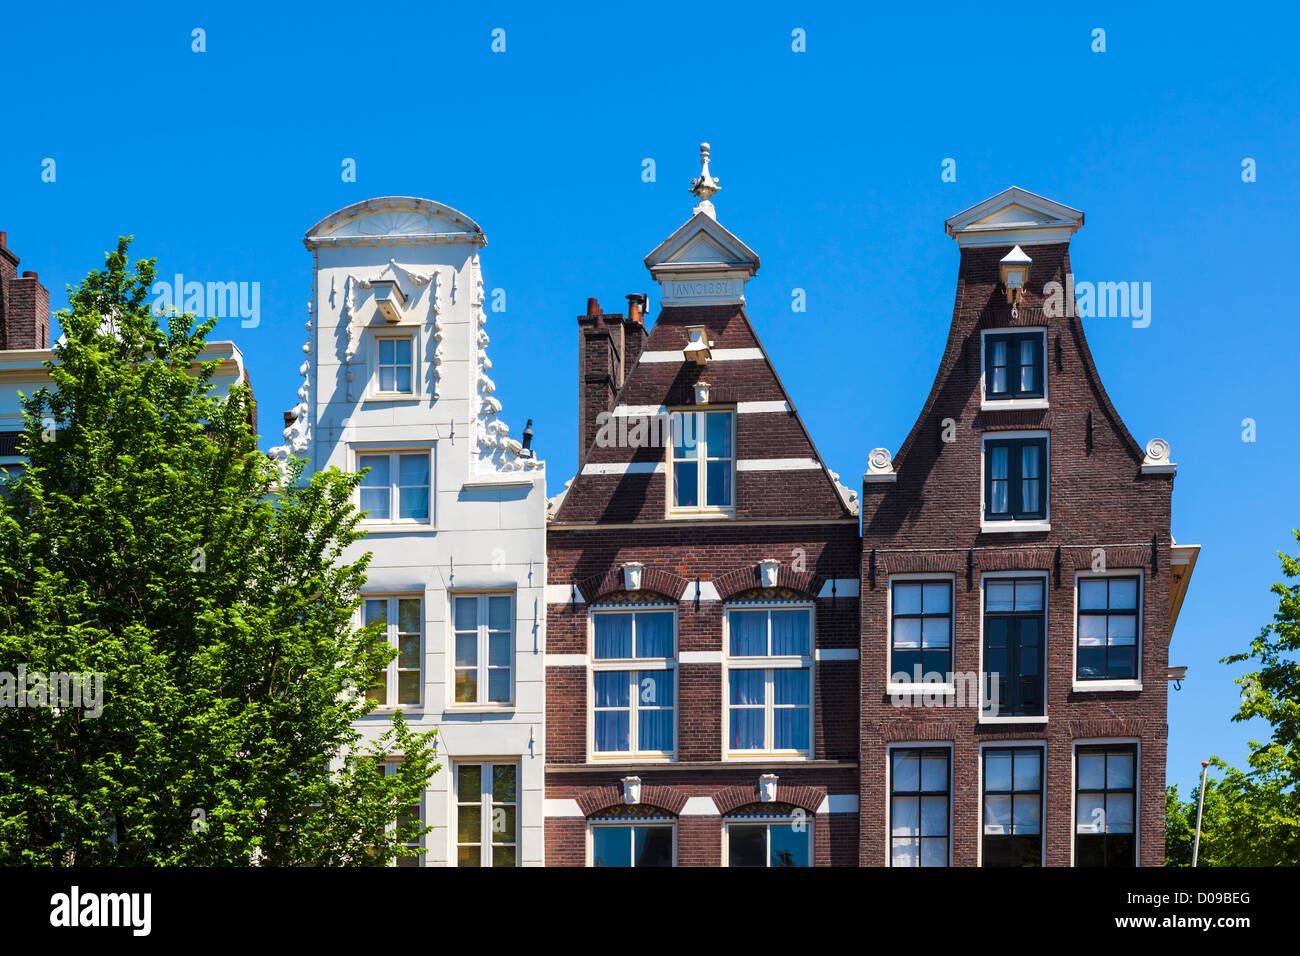 Typical gable houses in downtown Amsterdam, the Netherlands - Stock Image